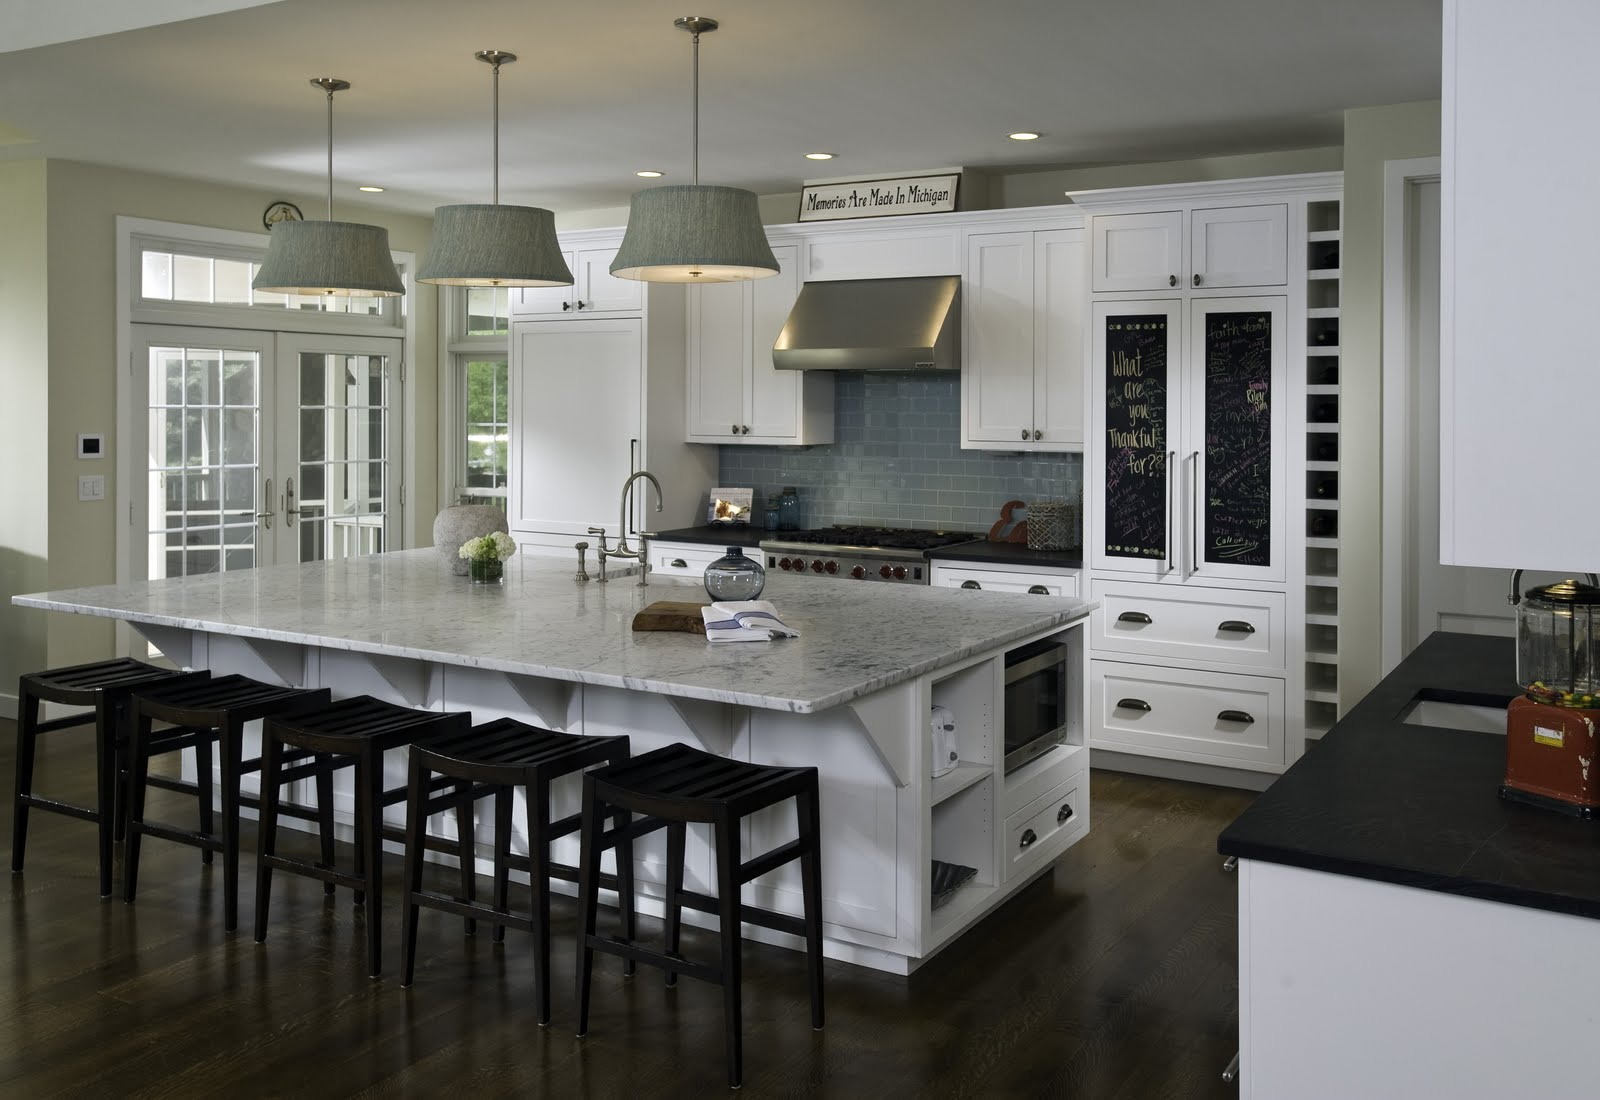 Choose White Kitchen Island with Dark Stools and Grey Marble Countertop under Grey Shaded Ceiling Lamps